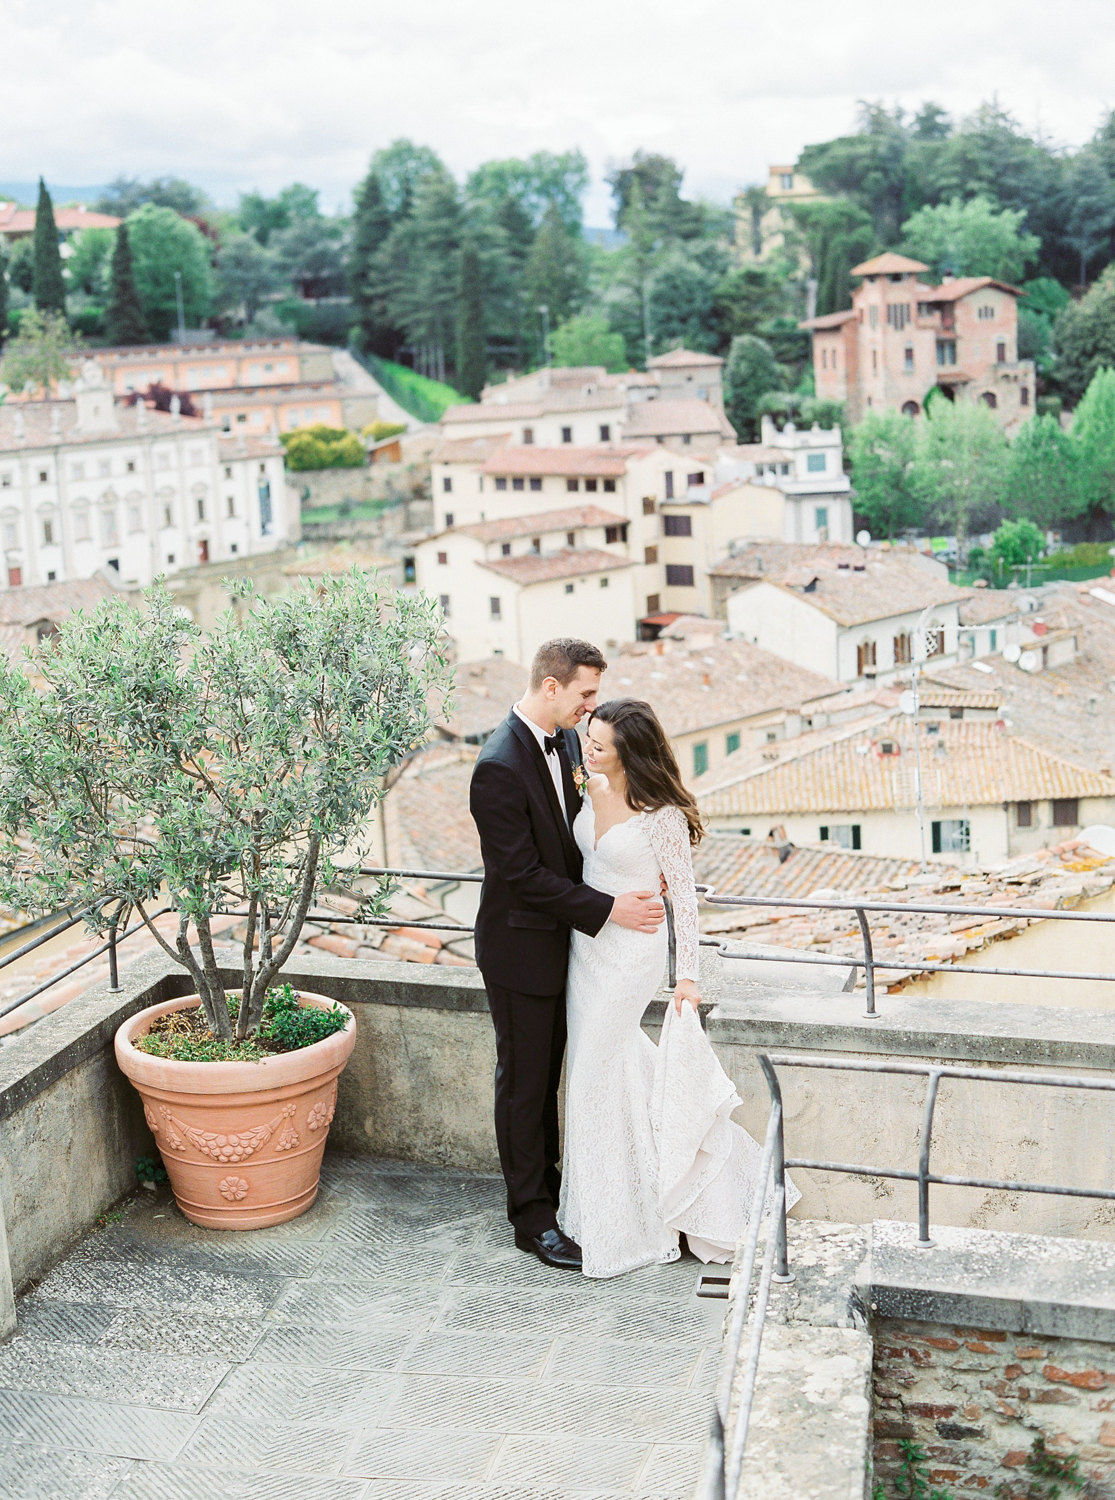 masha golub photography 8 1 - LOVE IN TUSCANY